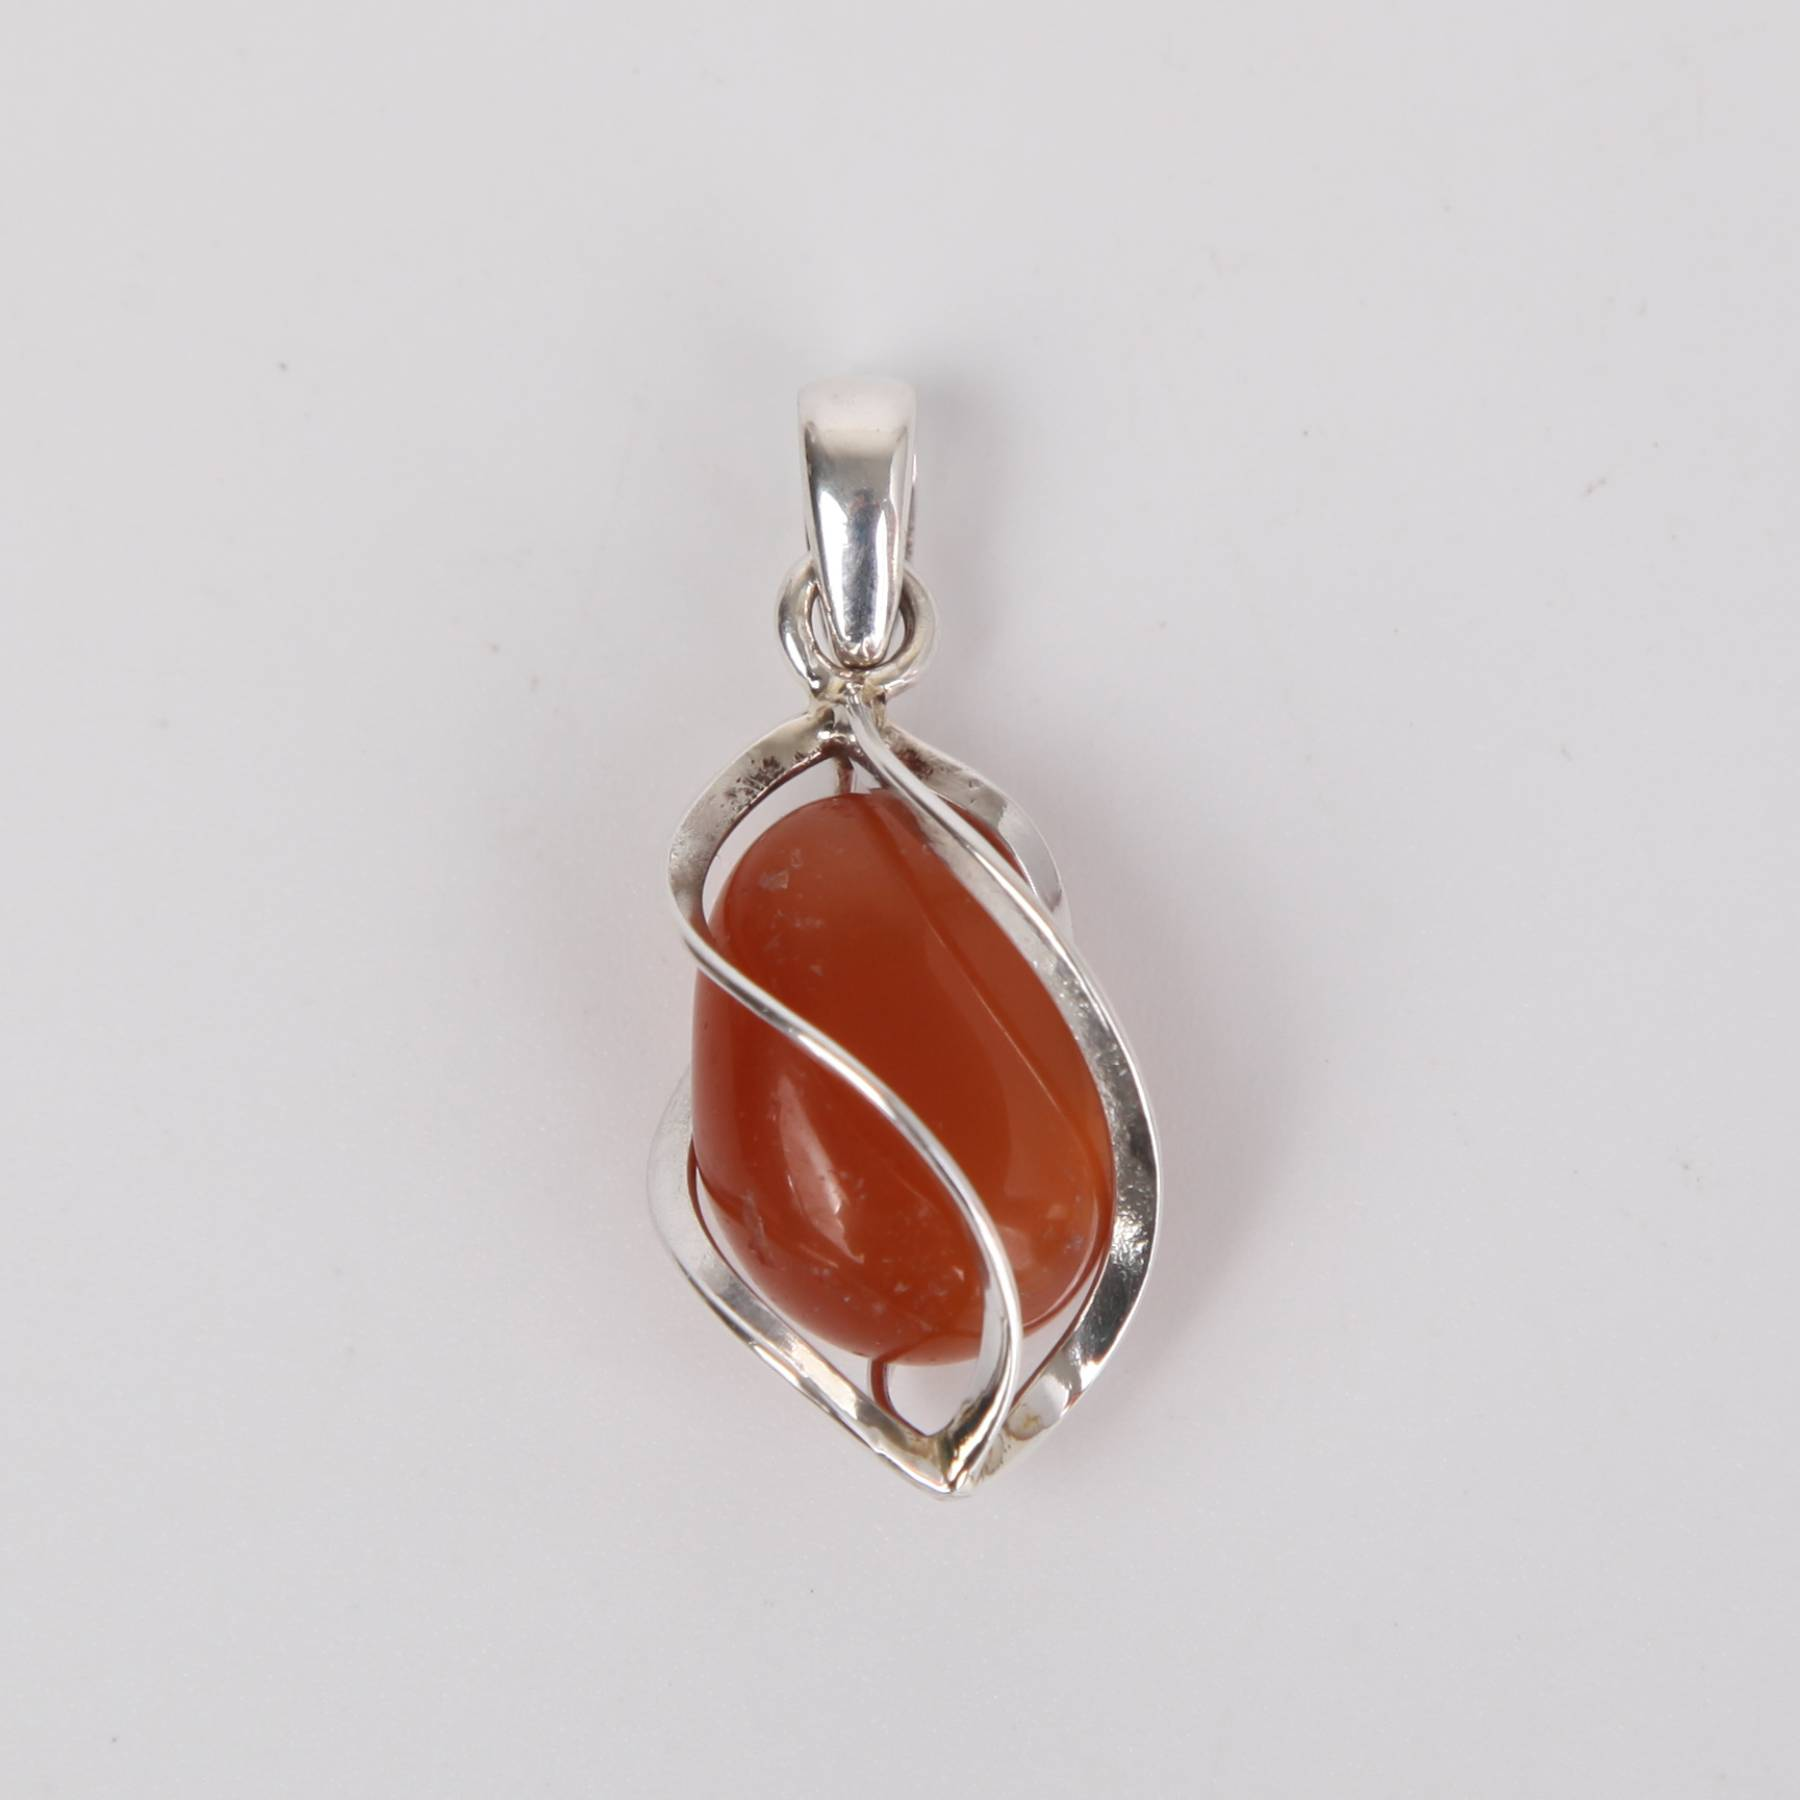 Sterling Silver Pendant with Agate